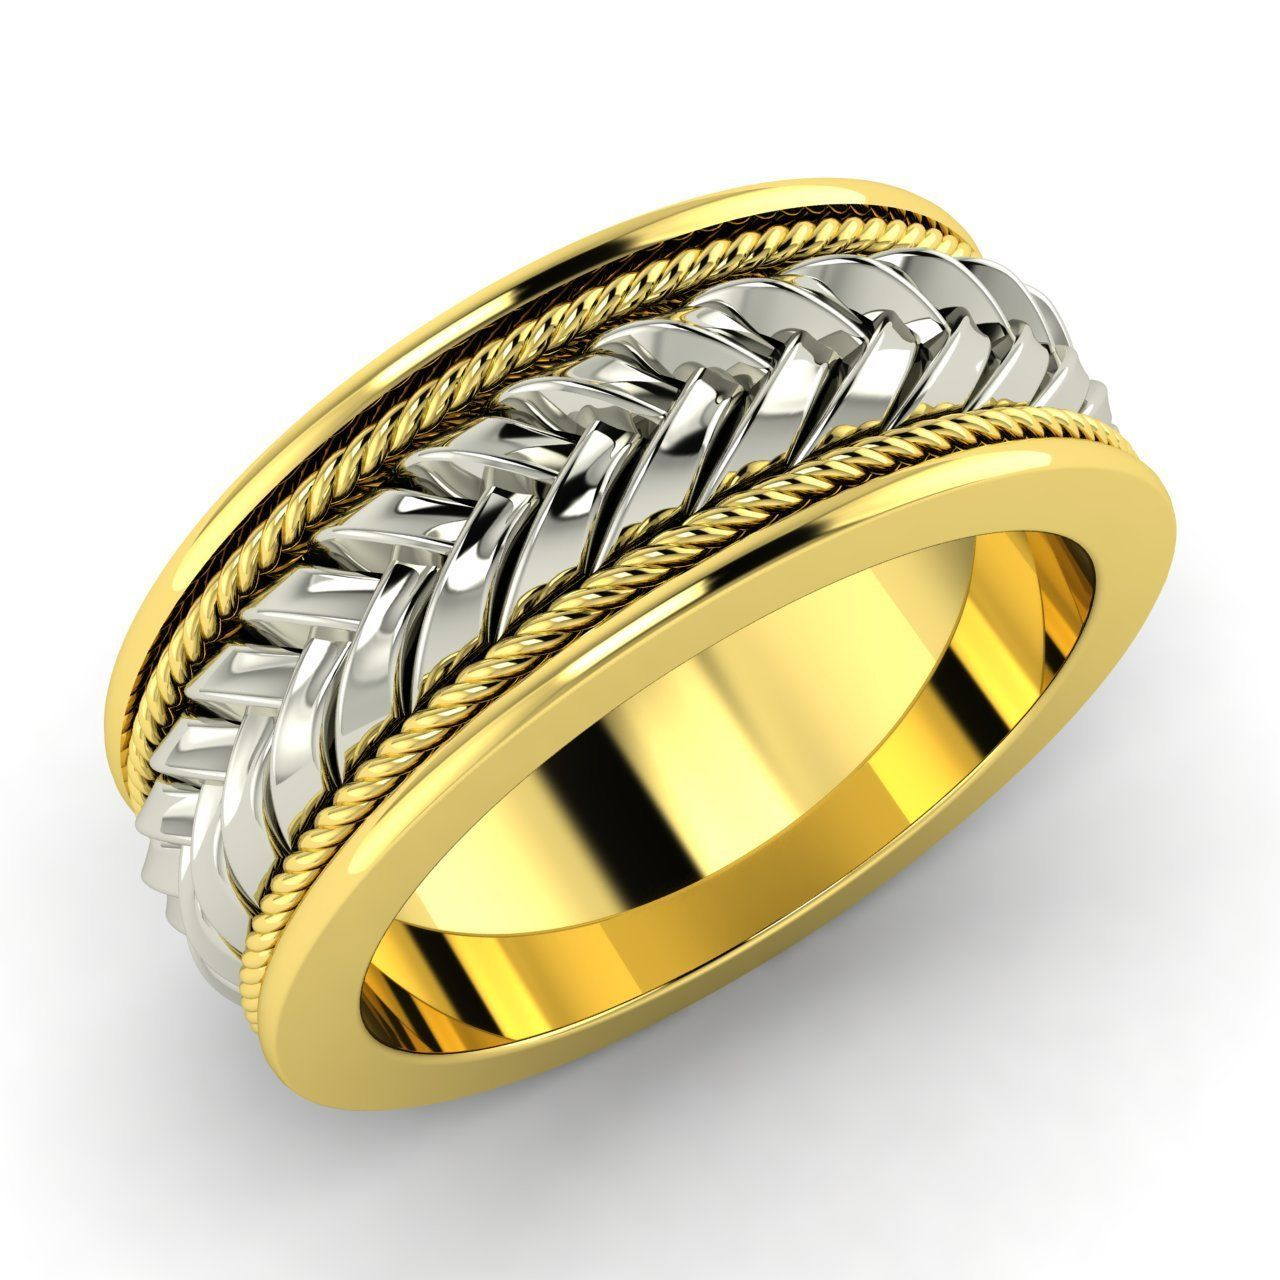 7 MM Braid Design Mens Engagement Wedding Band Ring in 14k Yellow